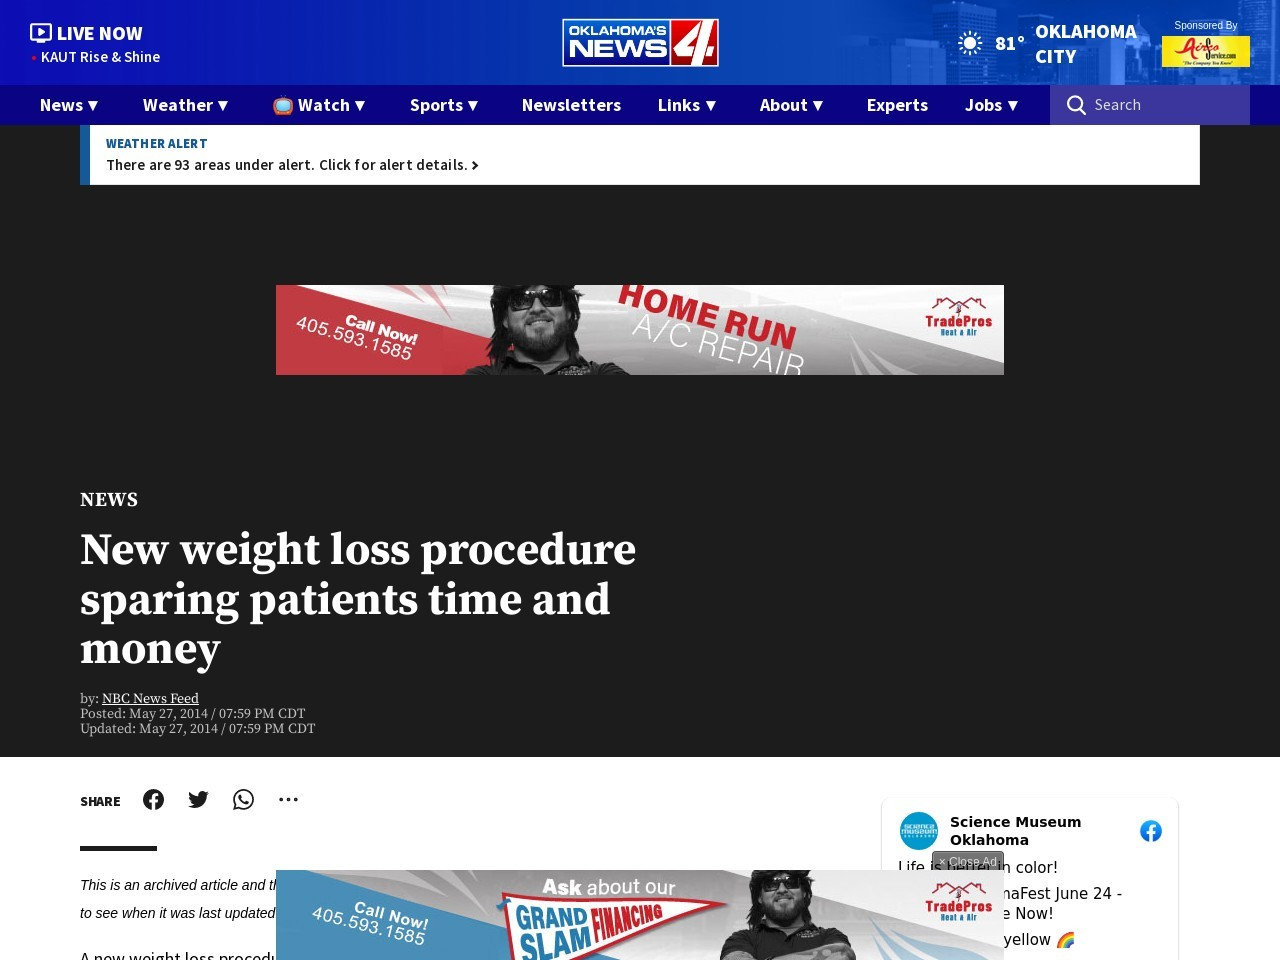 New weight loss procedure sparing patients time and money